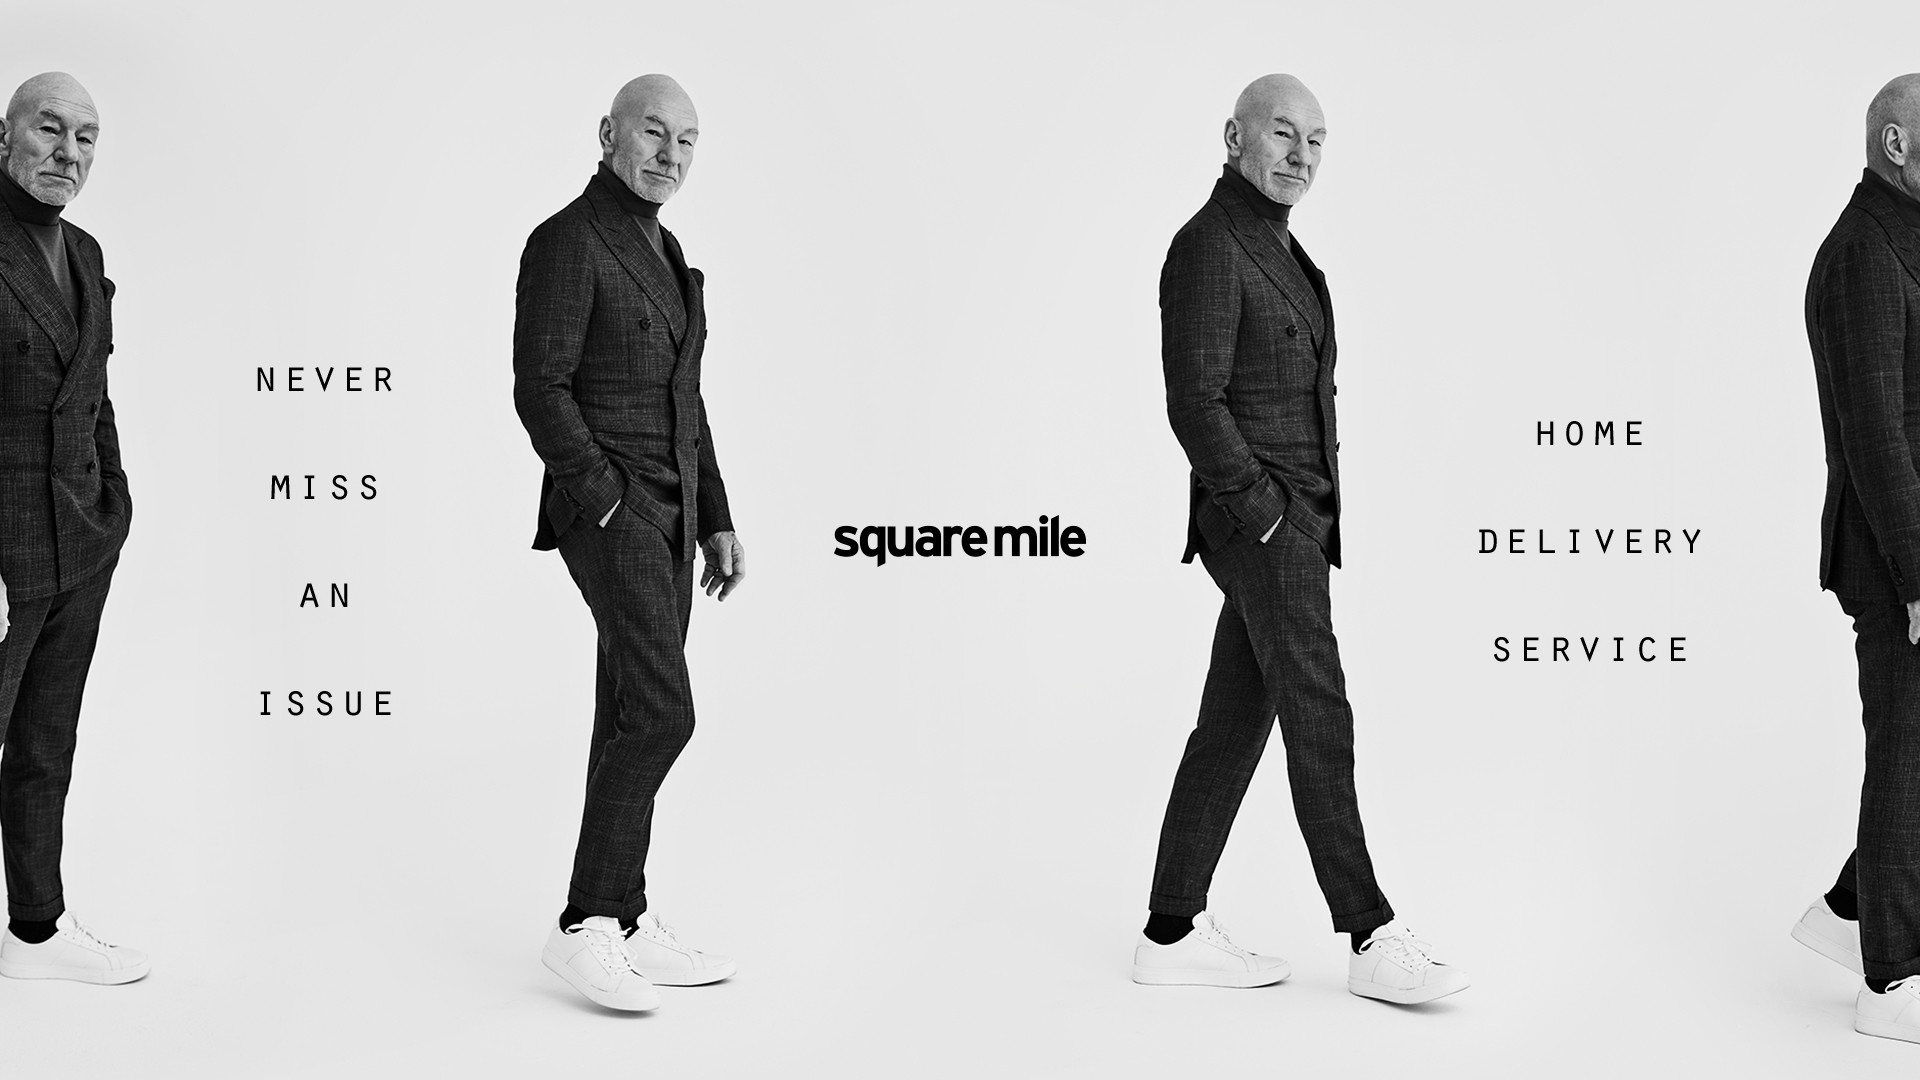 Copyright Maarten de Boer photographed for Square Mile